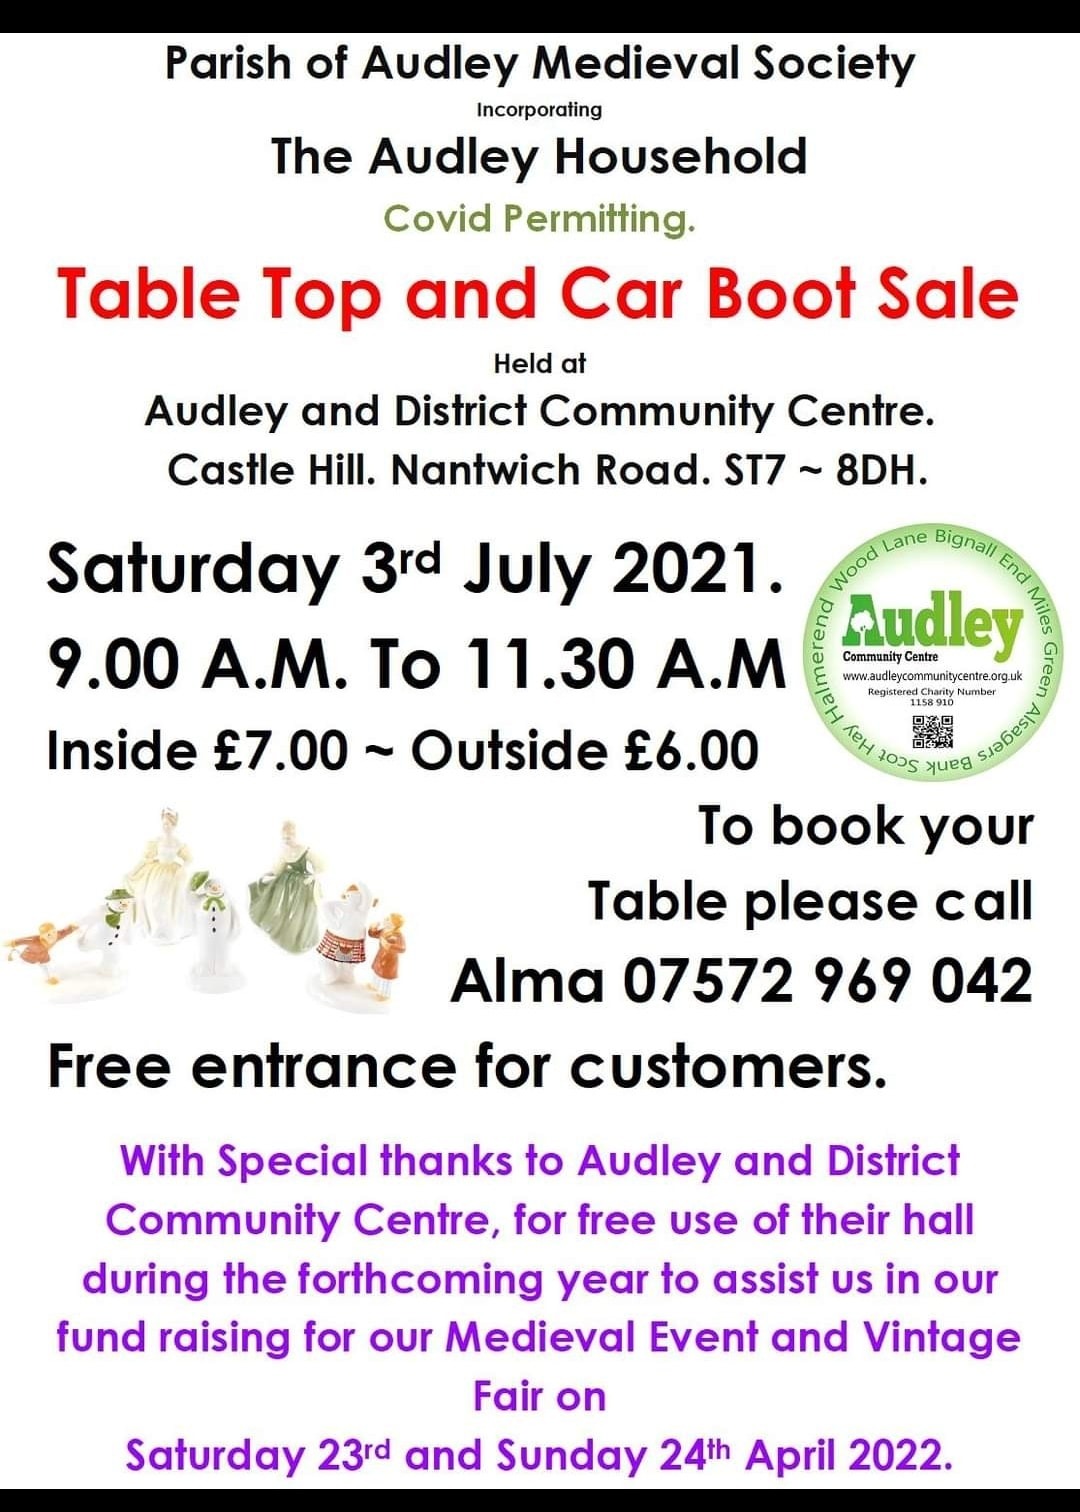 Local and live Table top and car boot sale